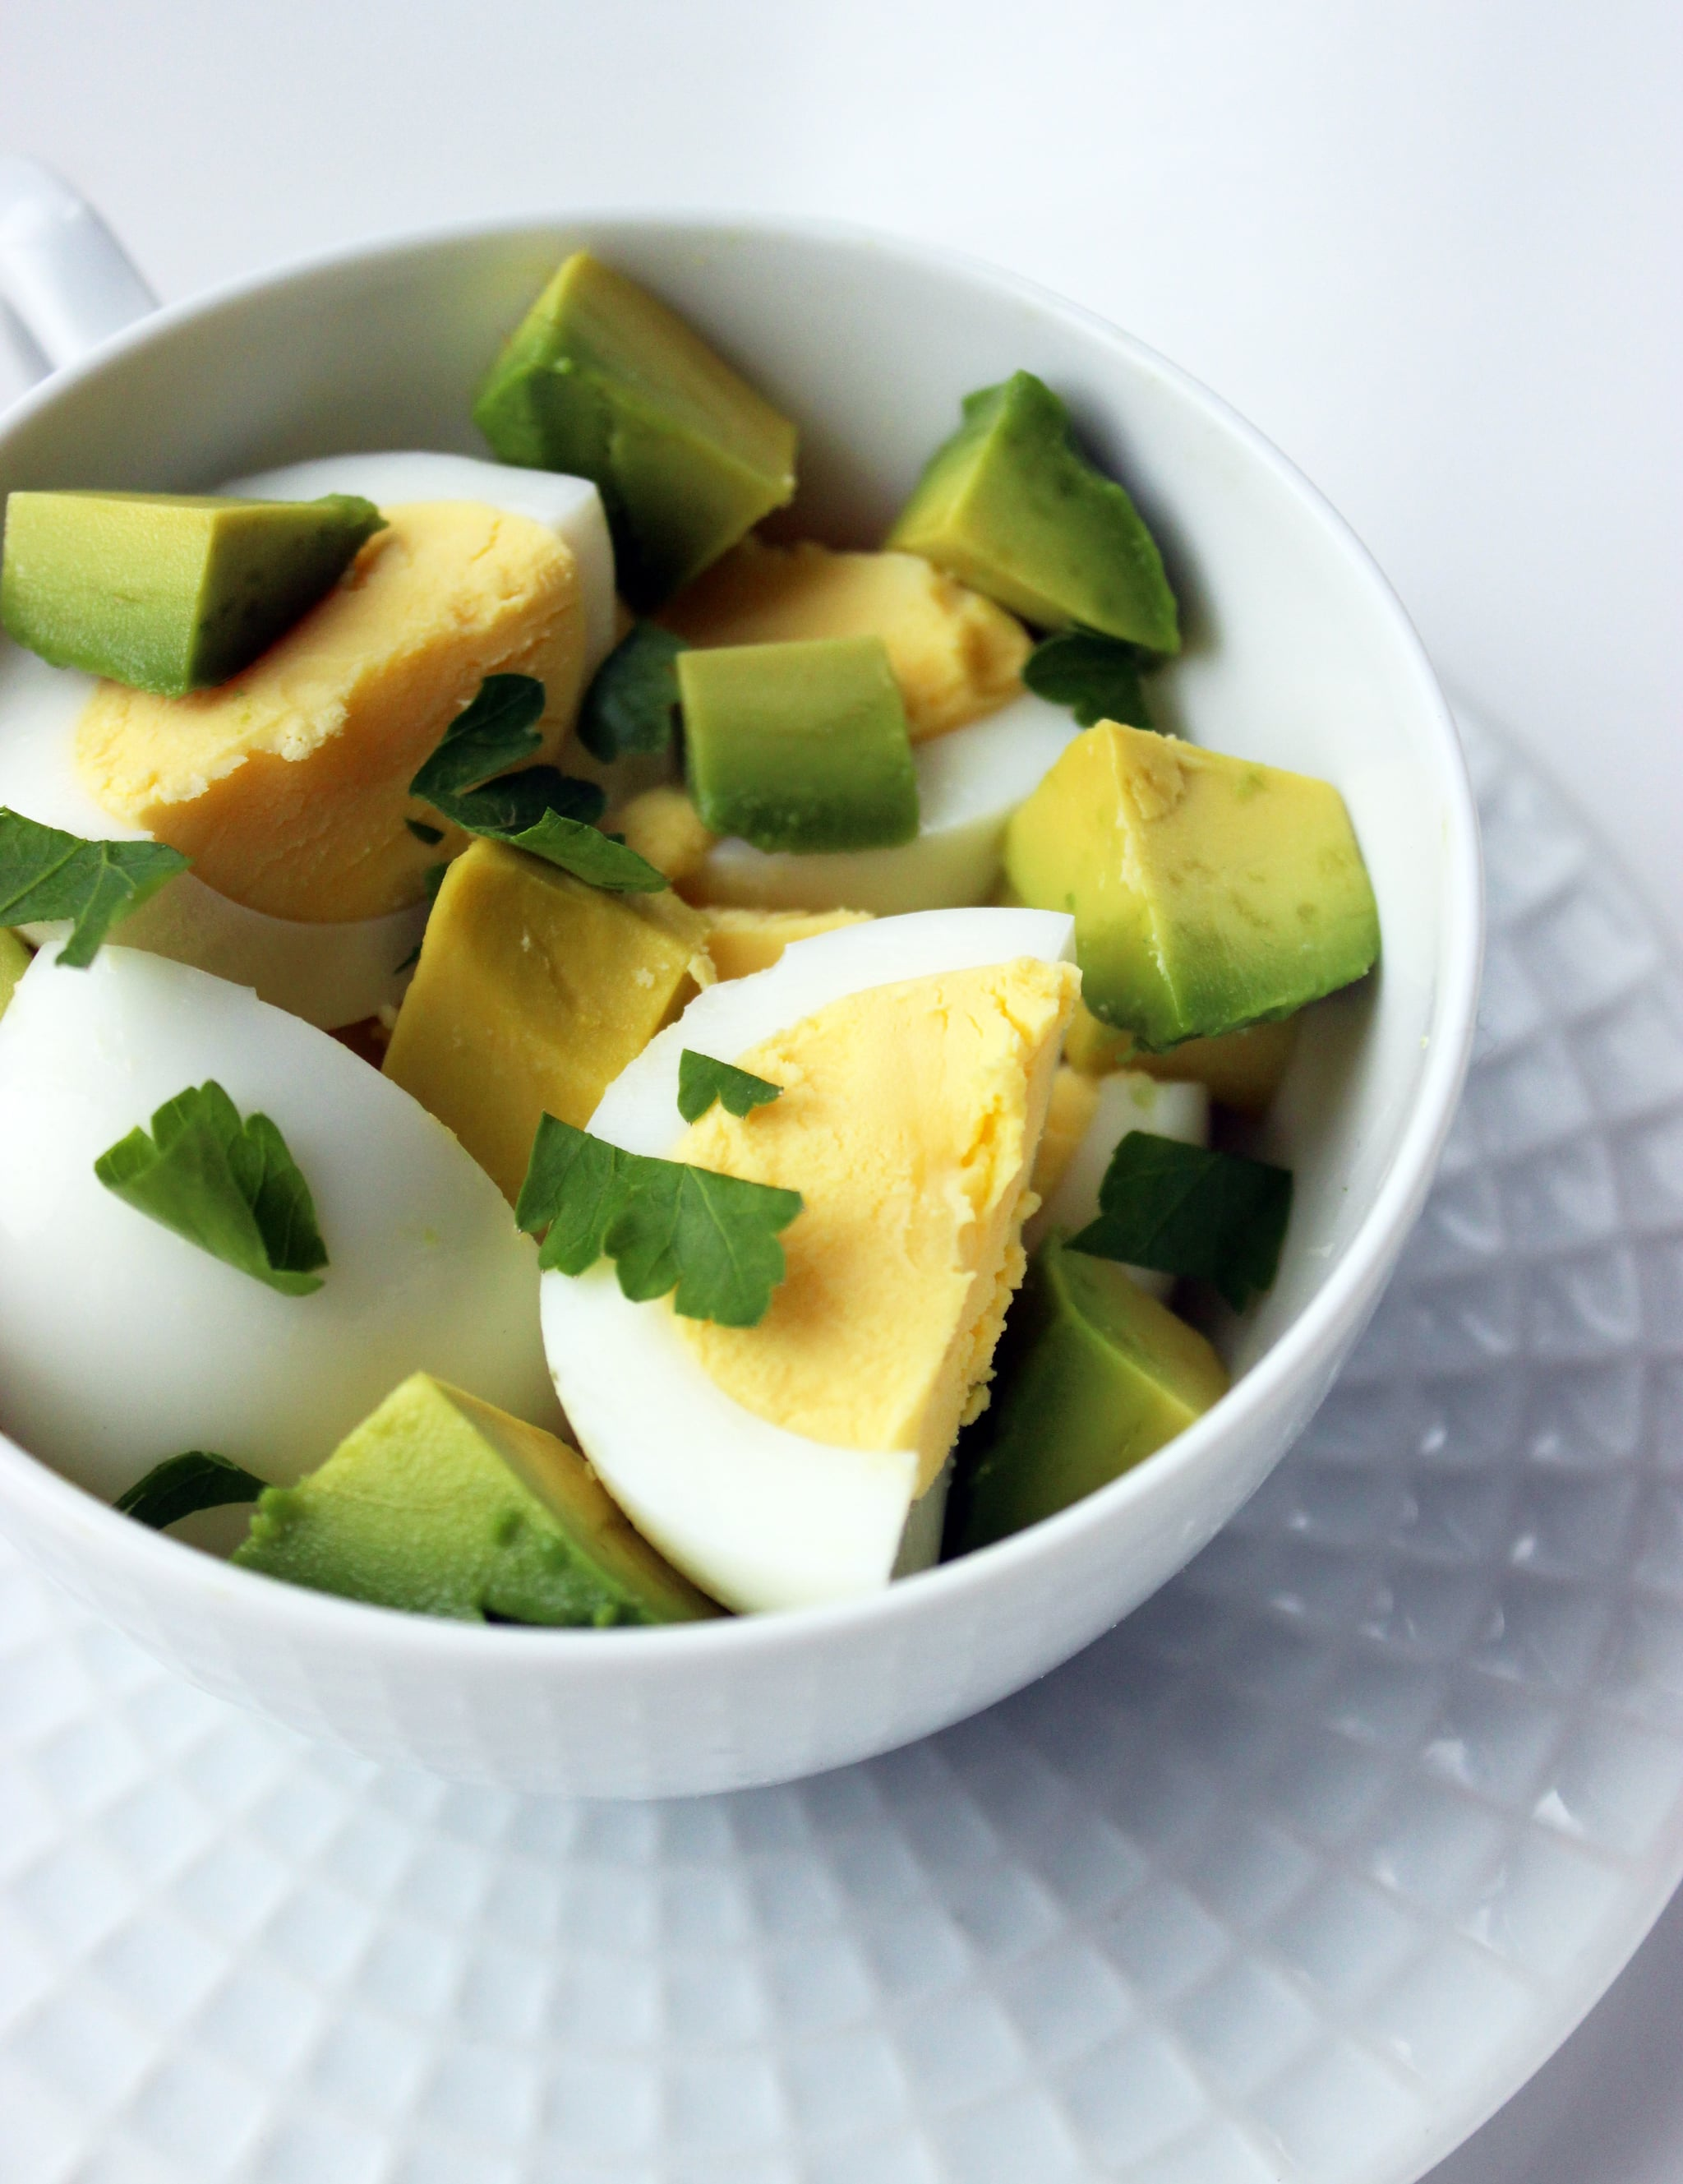 What simple salad can be made from boiled eggs